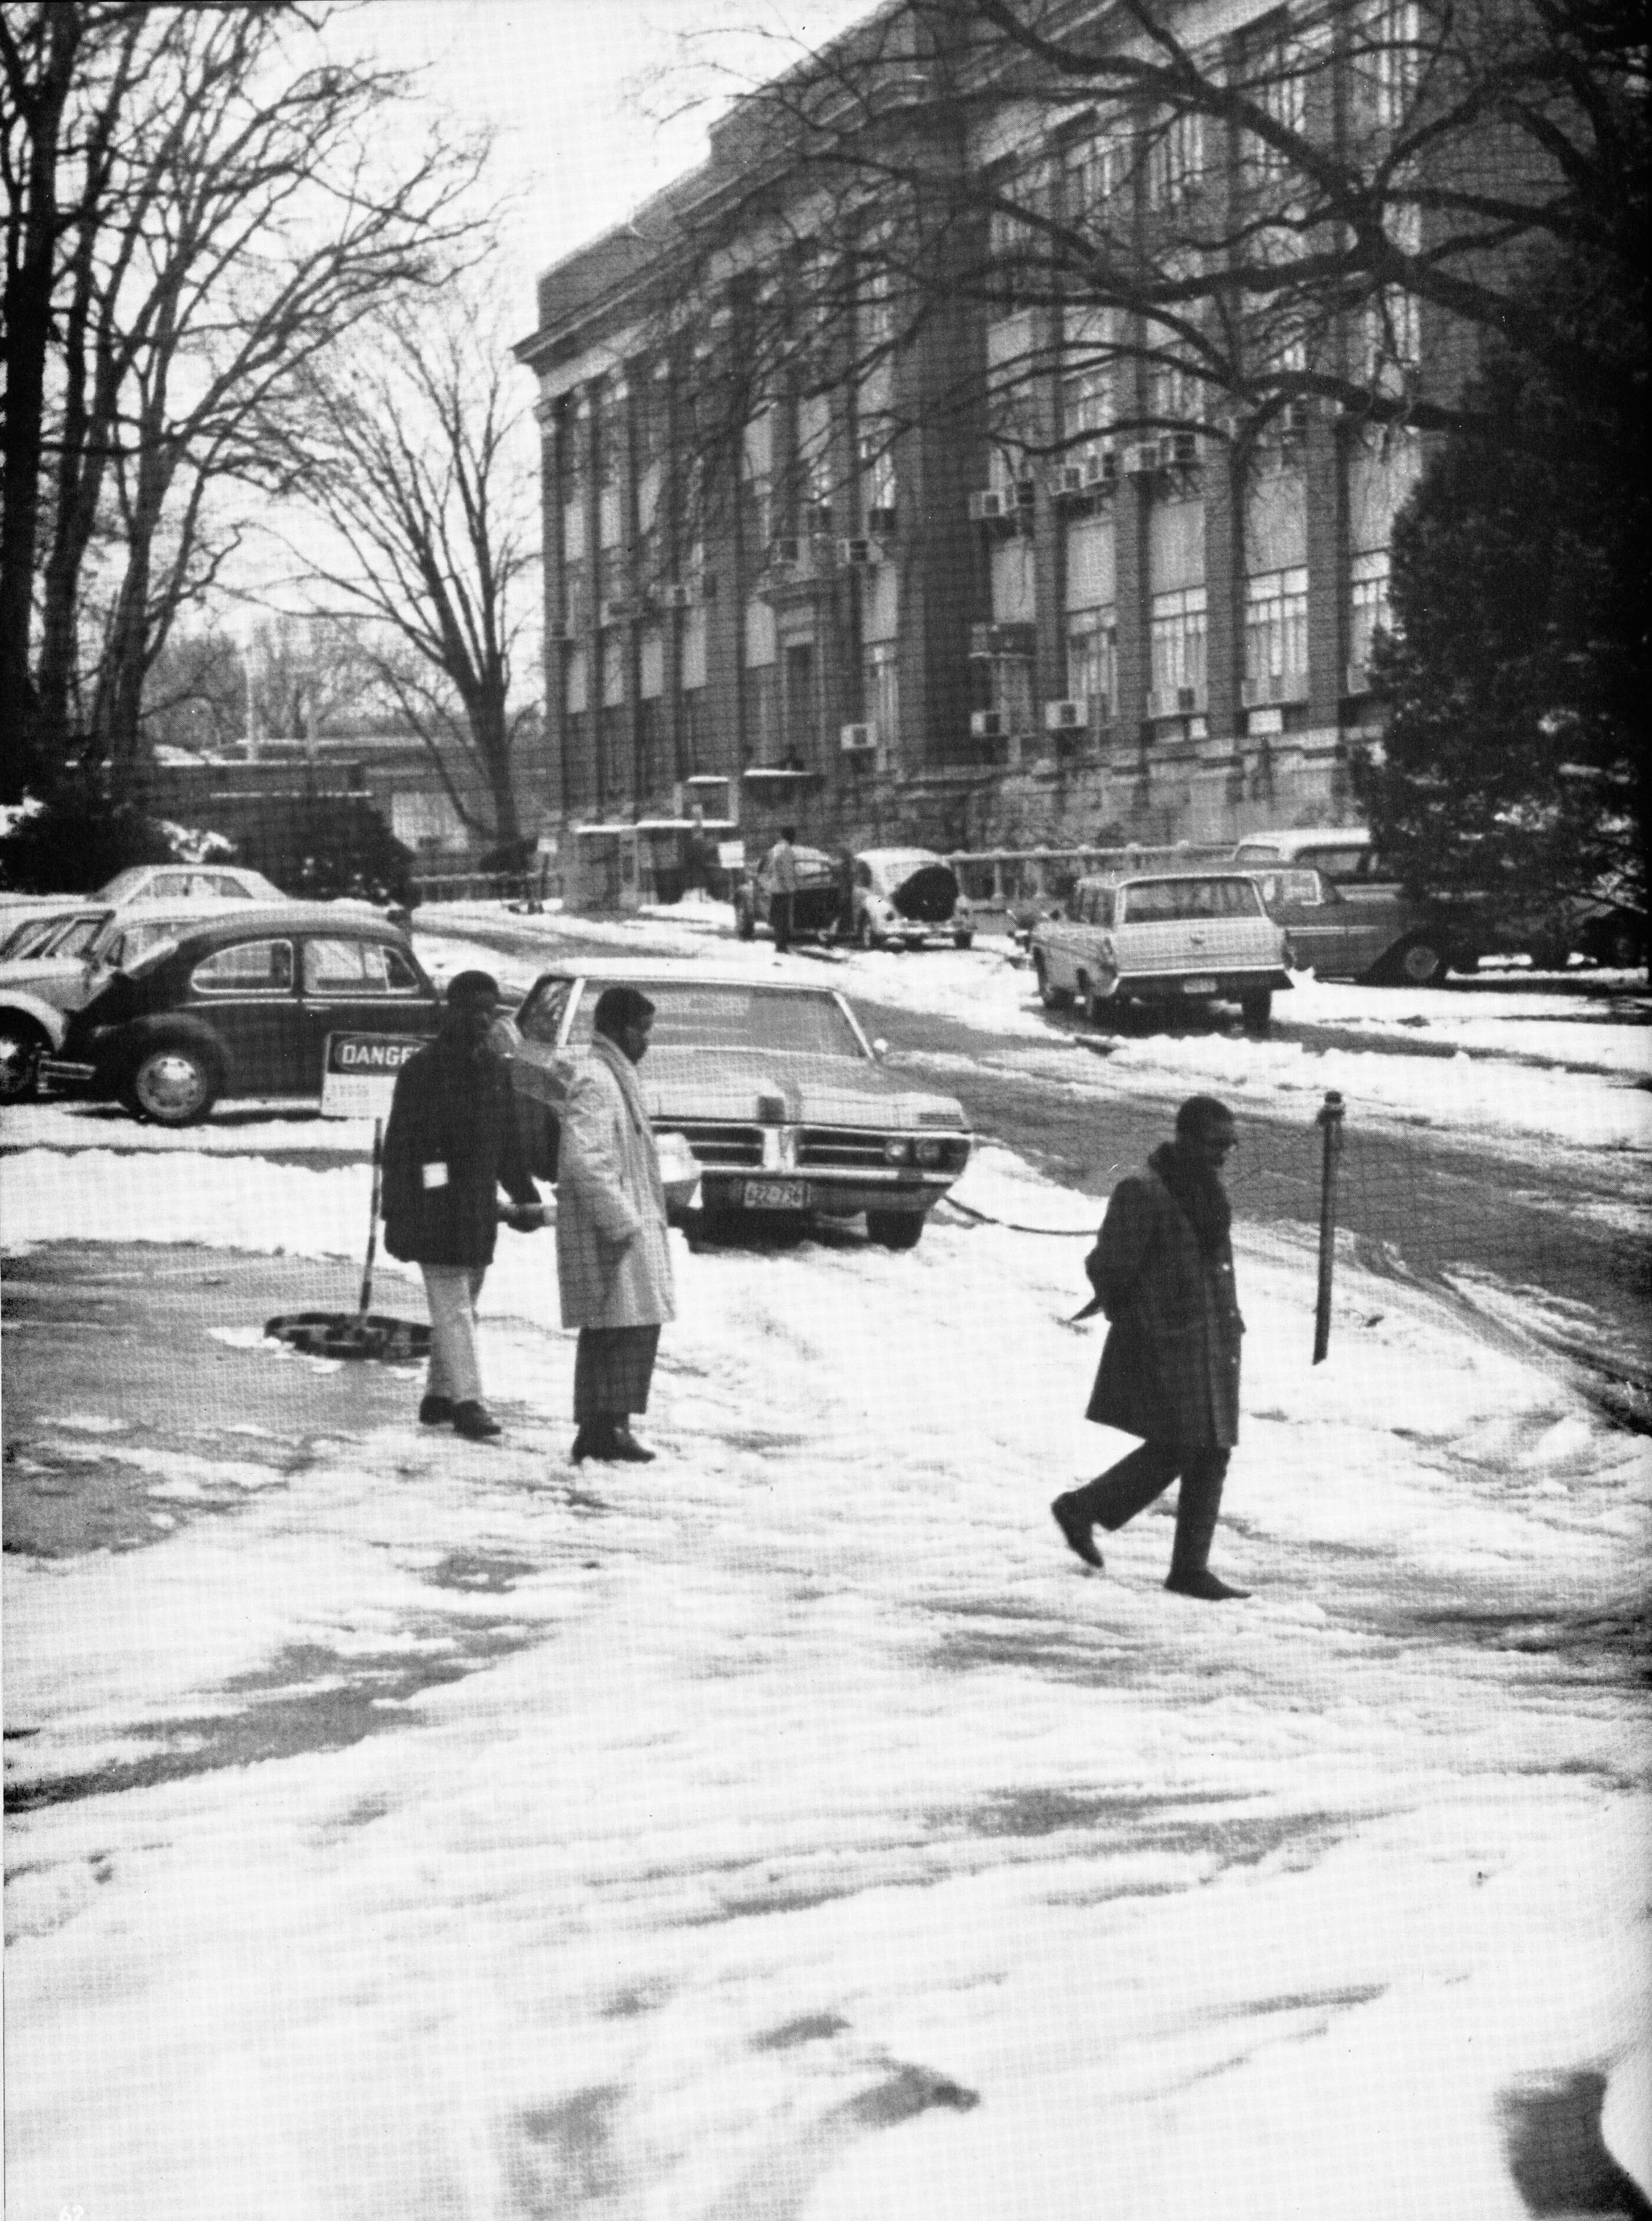 Washington Technical Institute -- National Bureau of Standards Site -- Winter Scene